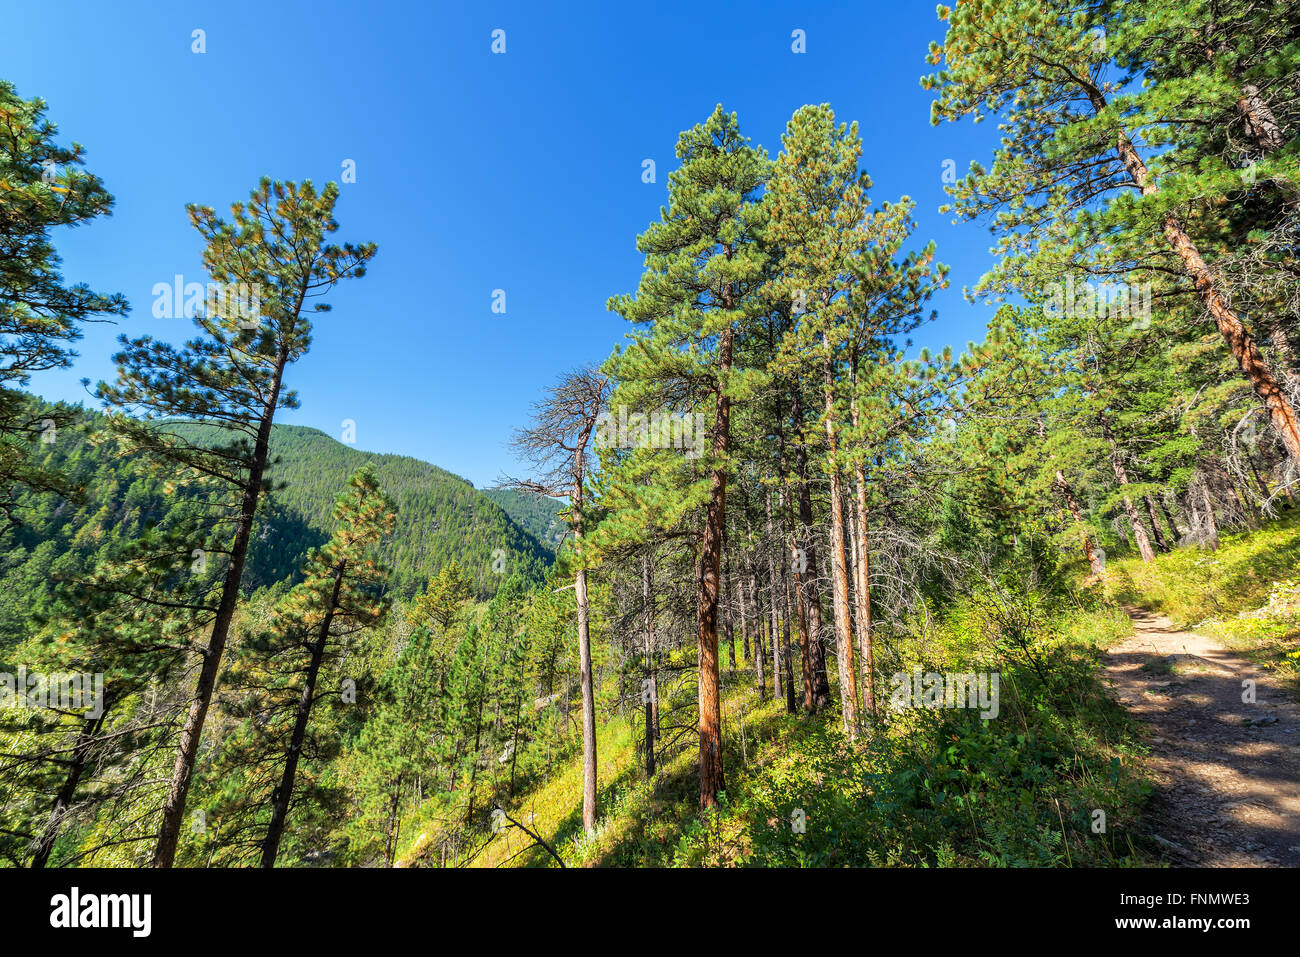 Hiking trail in South Piney Canyon near Story, Wyoming - Stock Image